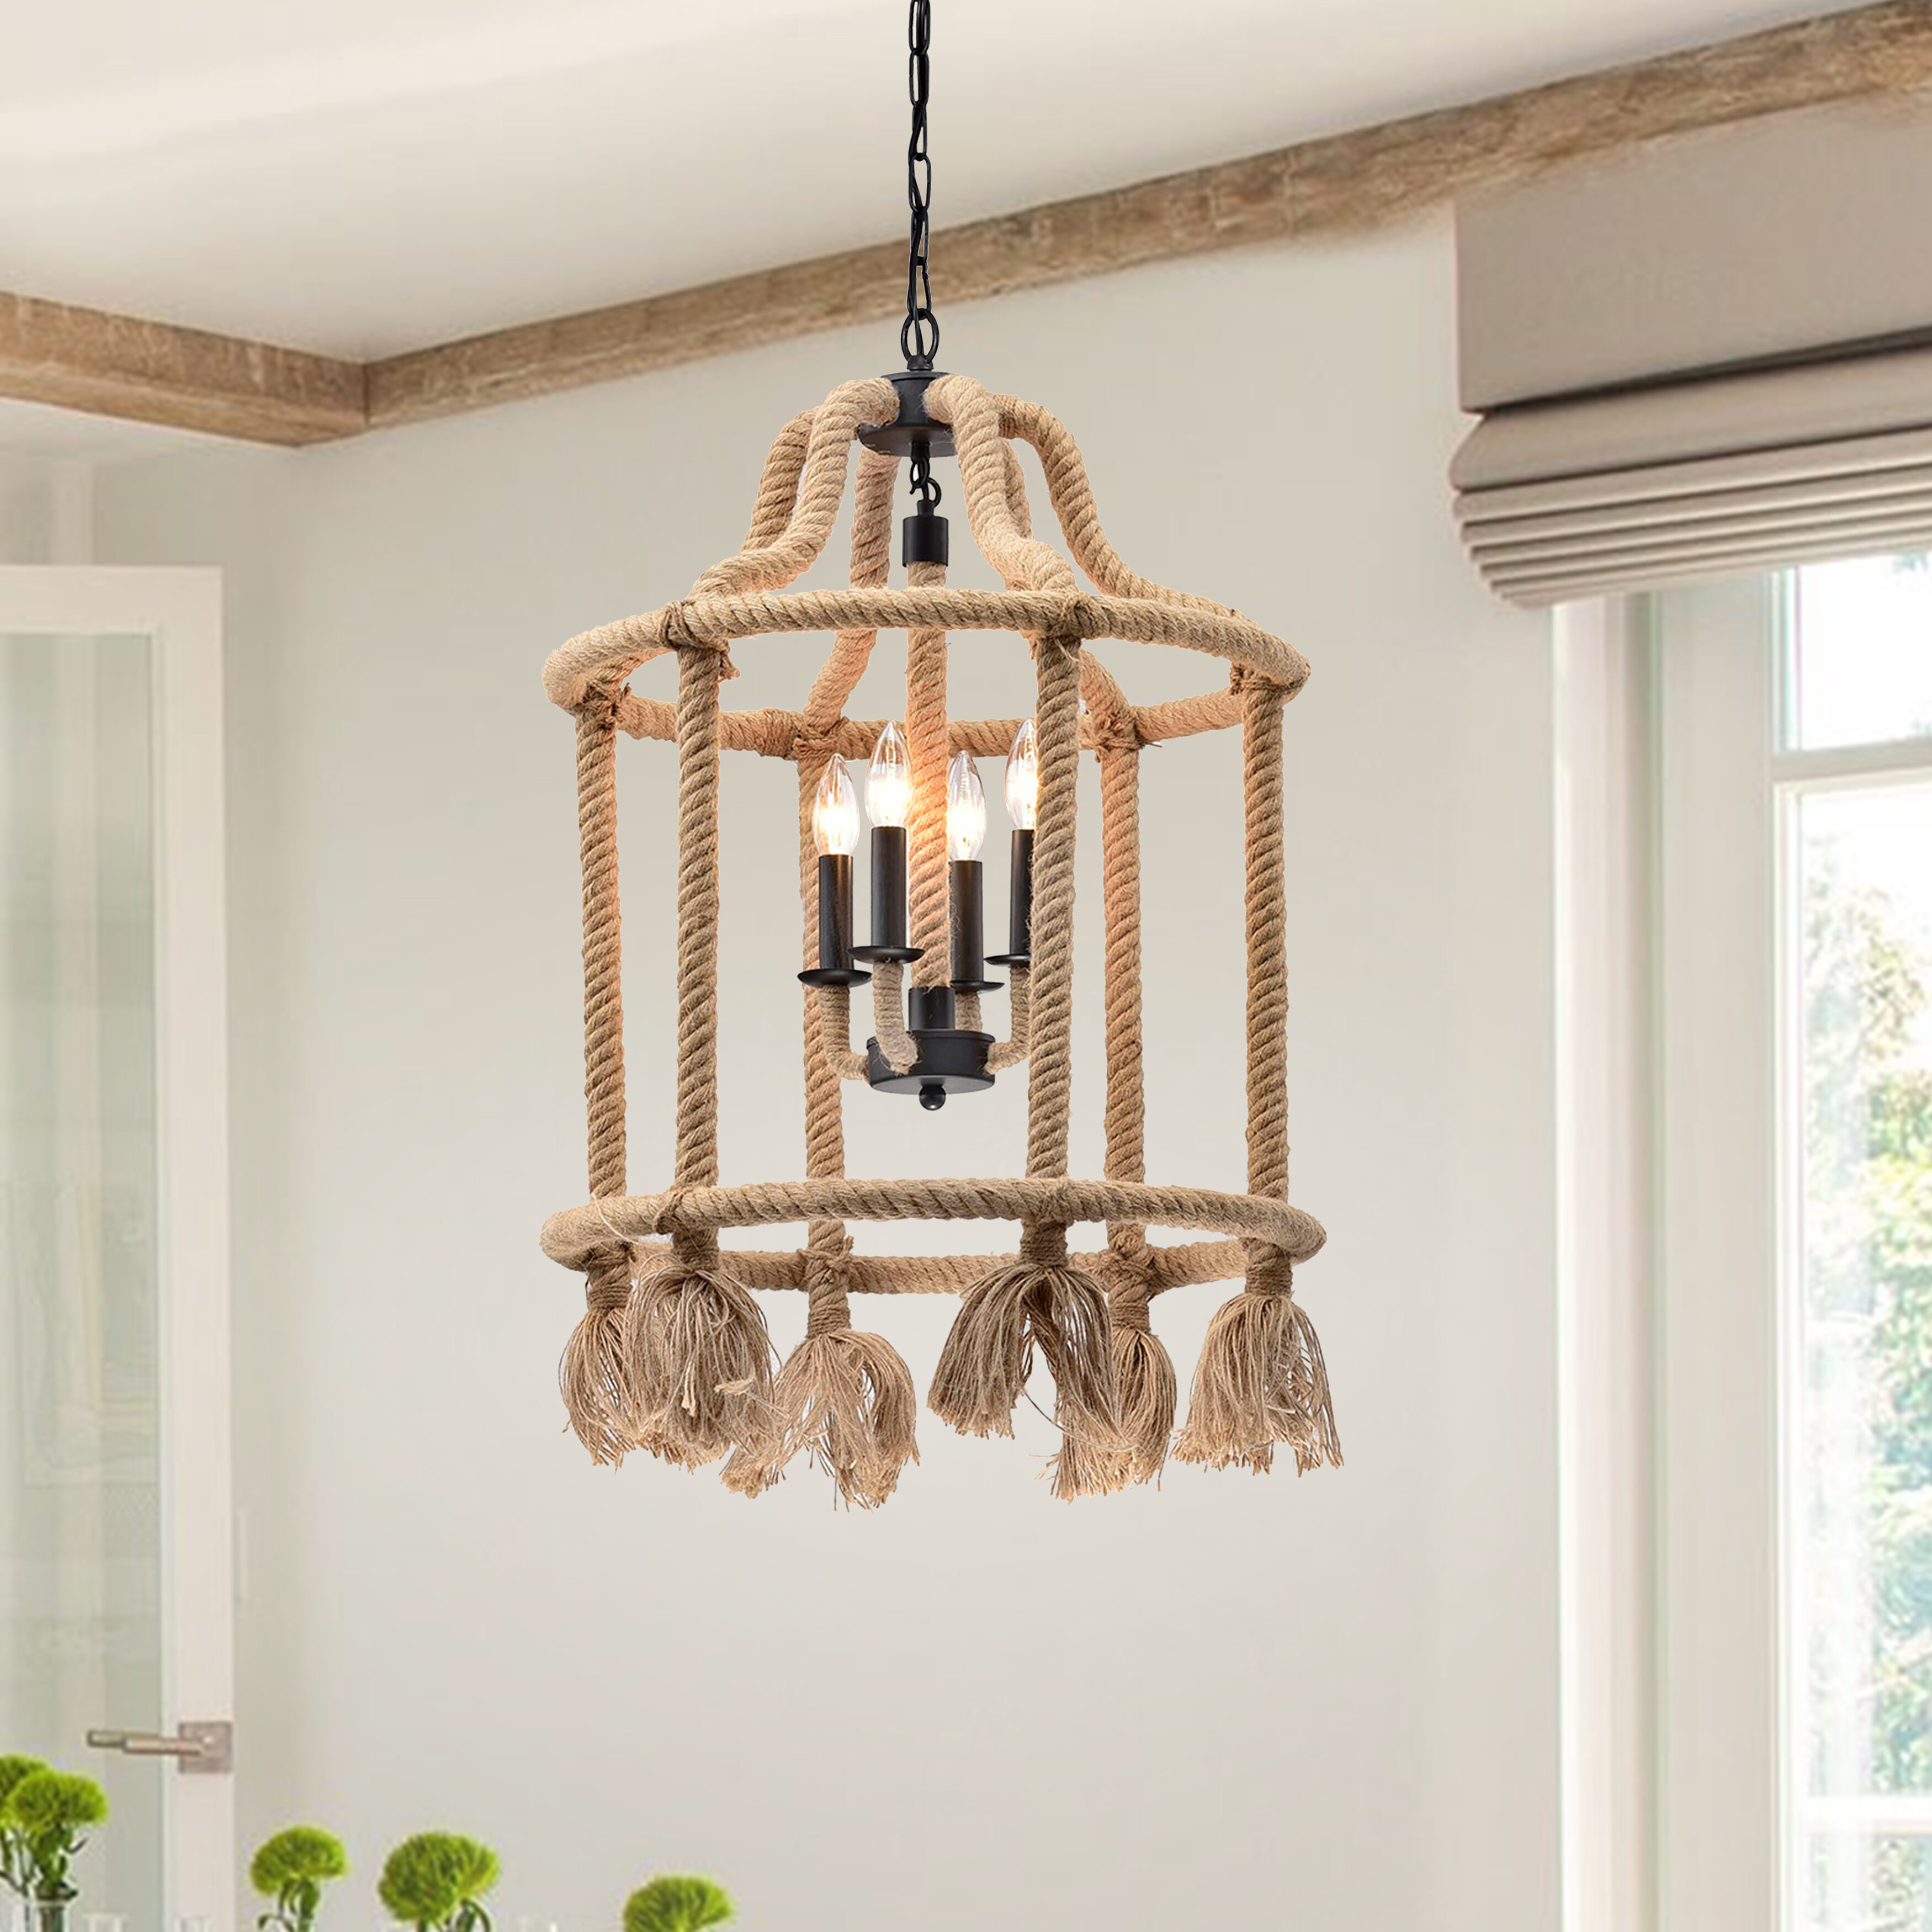 Ruyle Eastlake 3 Light Lantern Cylinder Pendant Pertaining To 3 Light Lantern Cylinder Pendants (Photo 9 of 30)